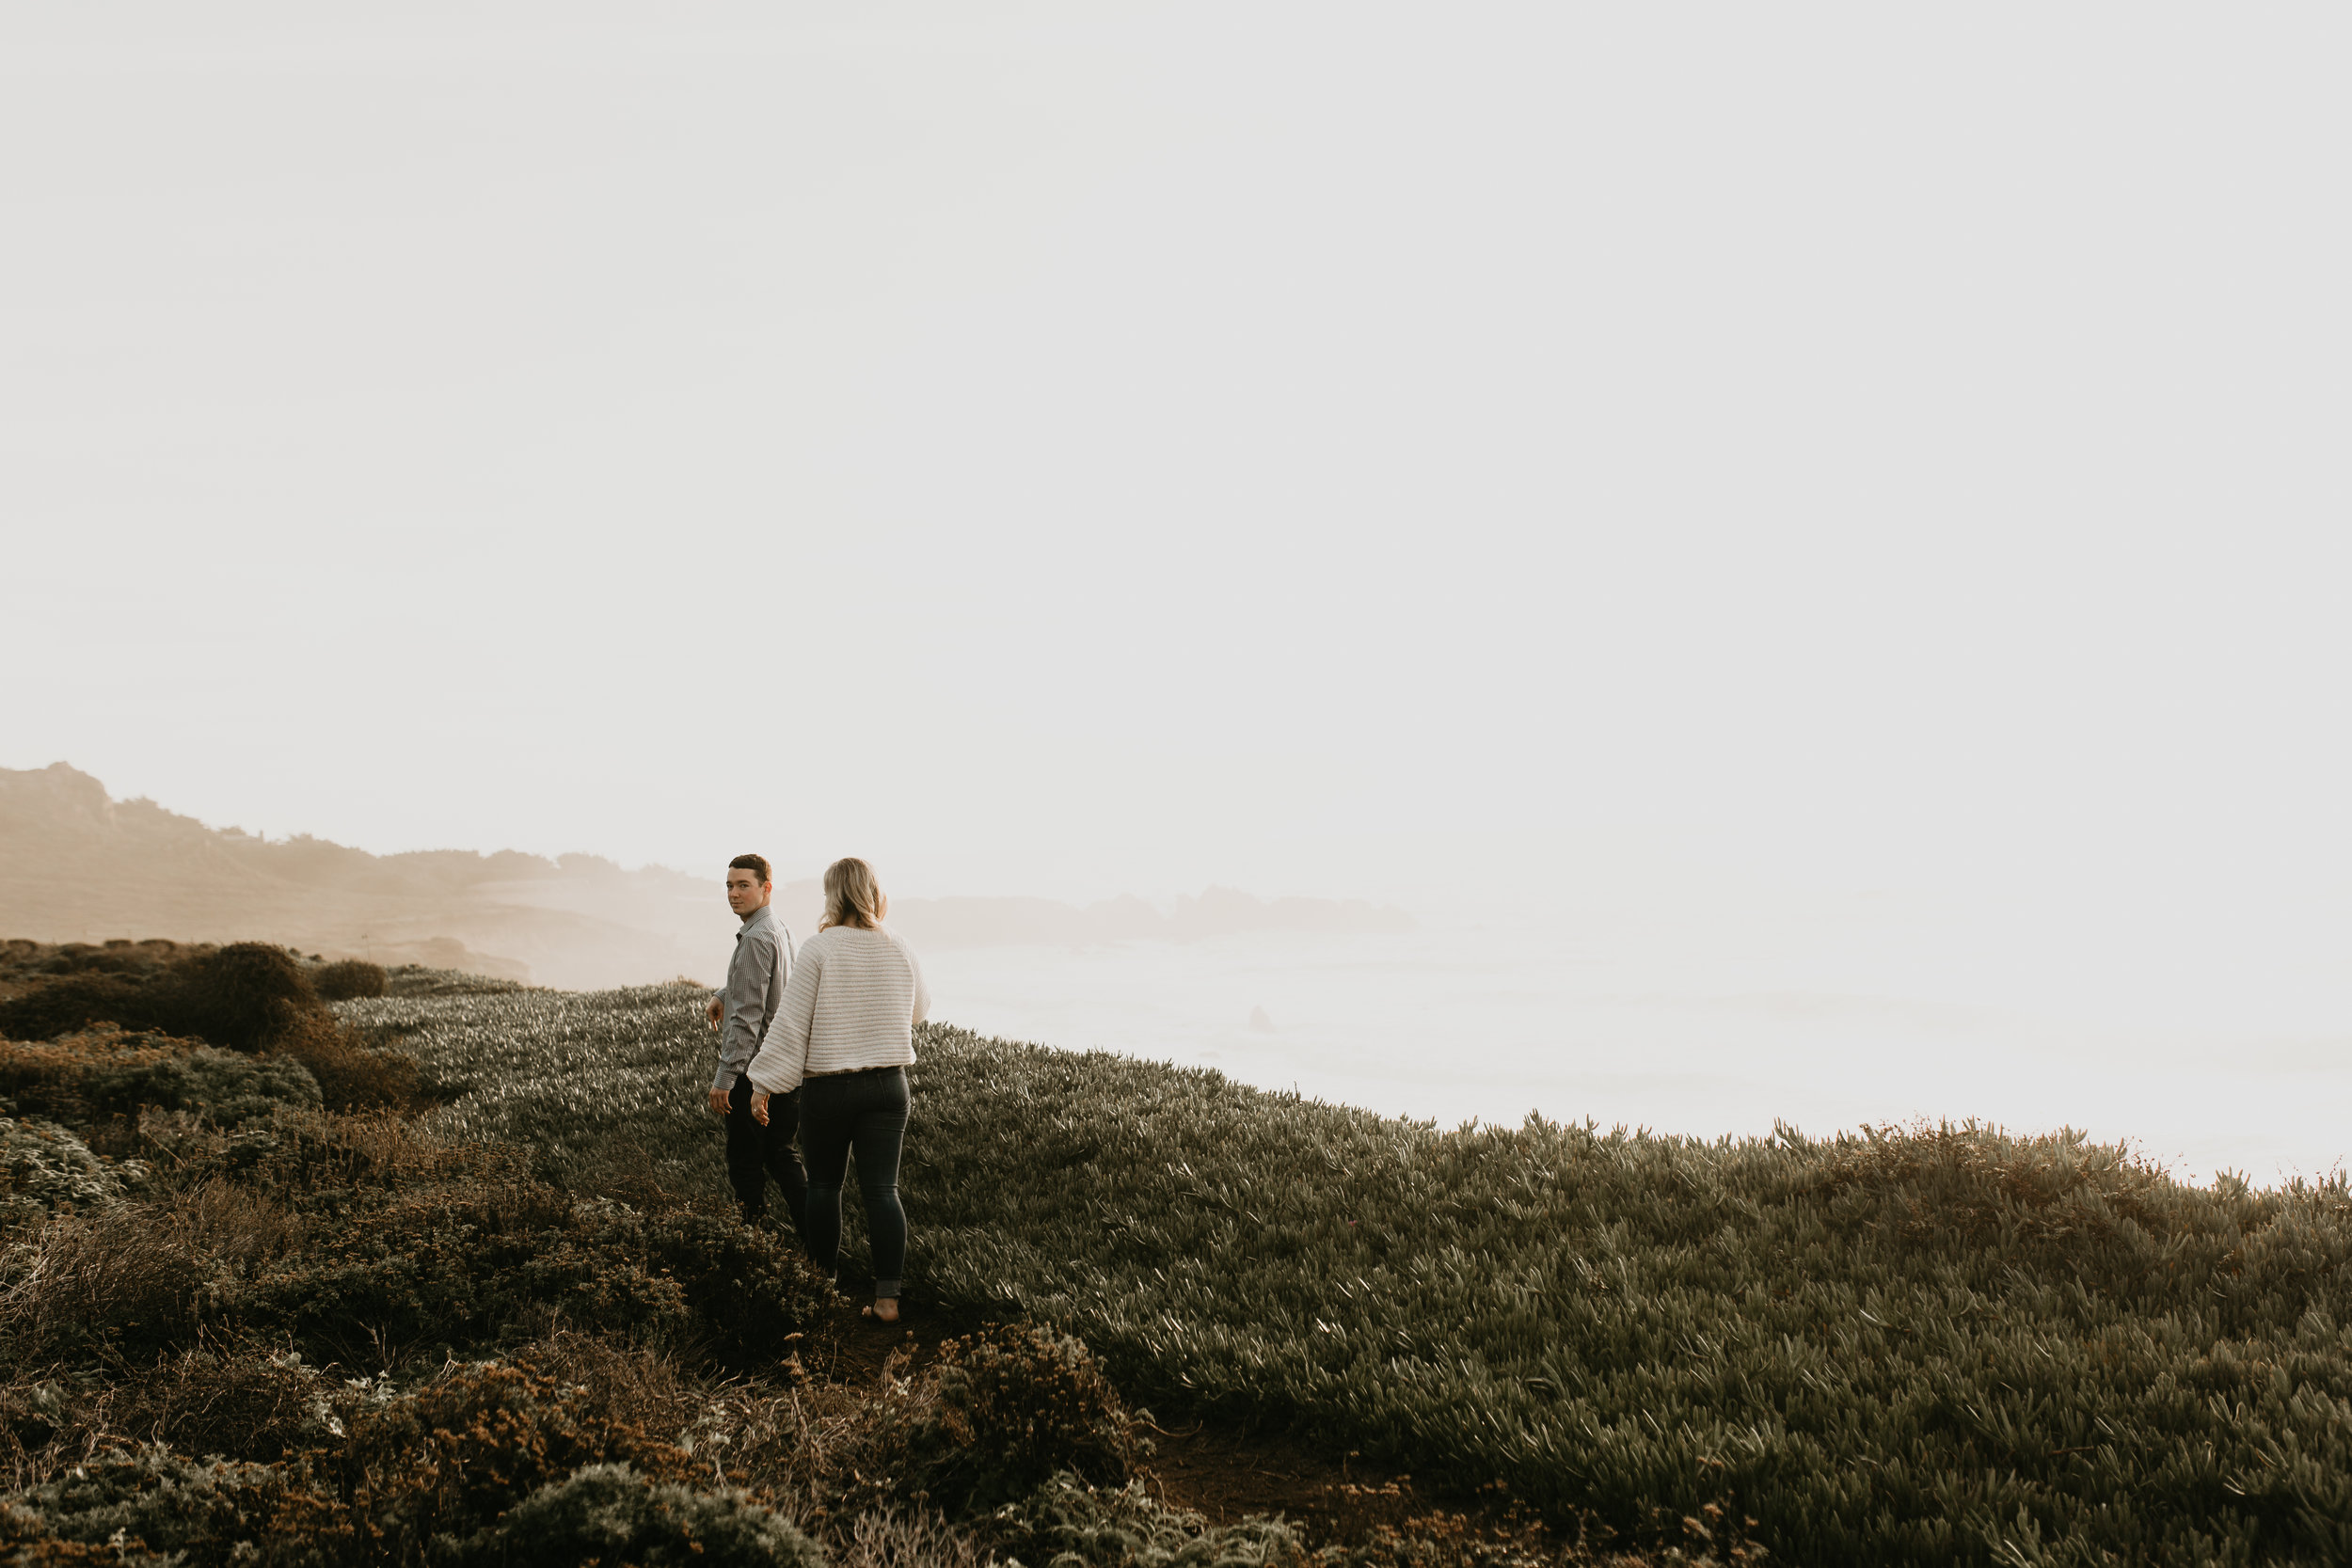 Nicole-Daacke-Photography-big-sur-garrapatta-state-park-adventurous-engagement-session-bixy-bridge-elopement-big-sur-wedding-photographer-monterey-elopement-photographer-california-golden-sunset-coast-photos-14.jpg